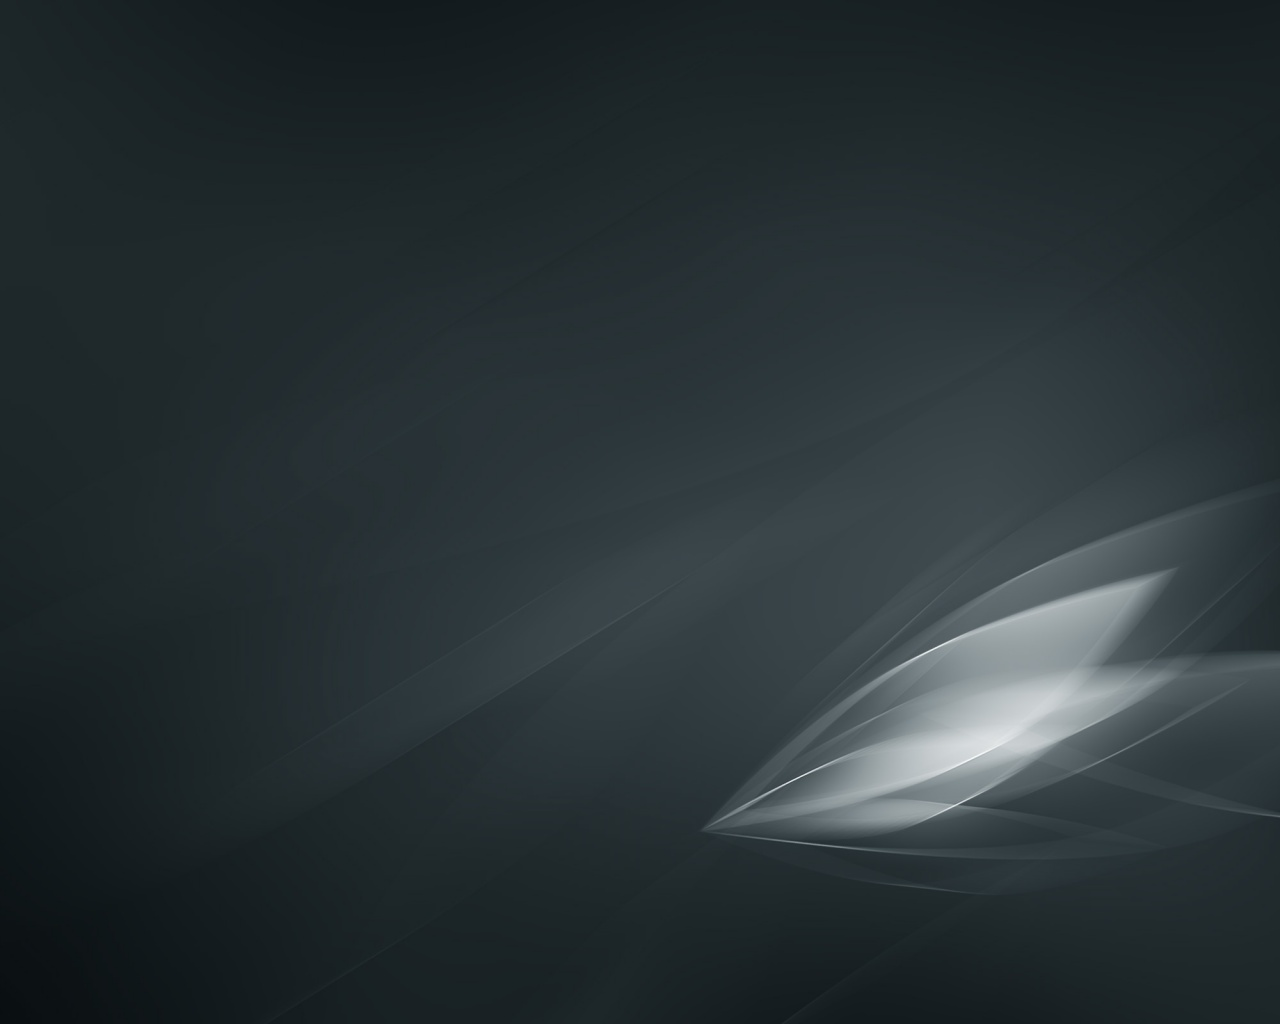 1280x1024 clean abstract background desktop pc and mac